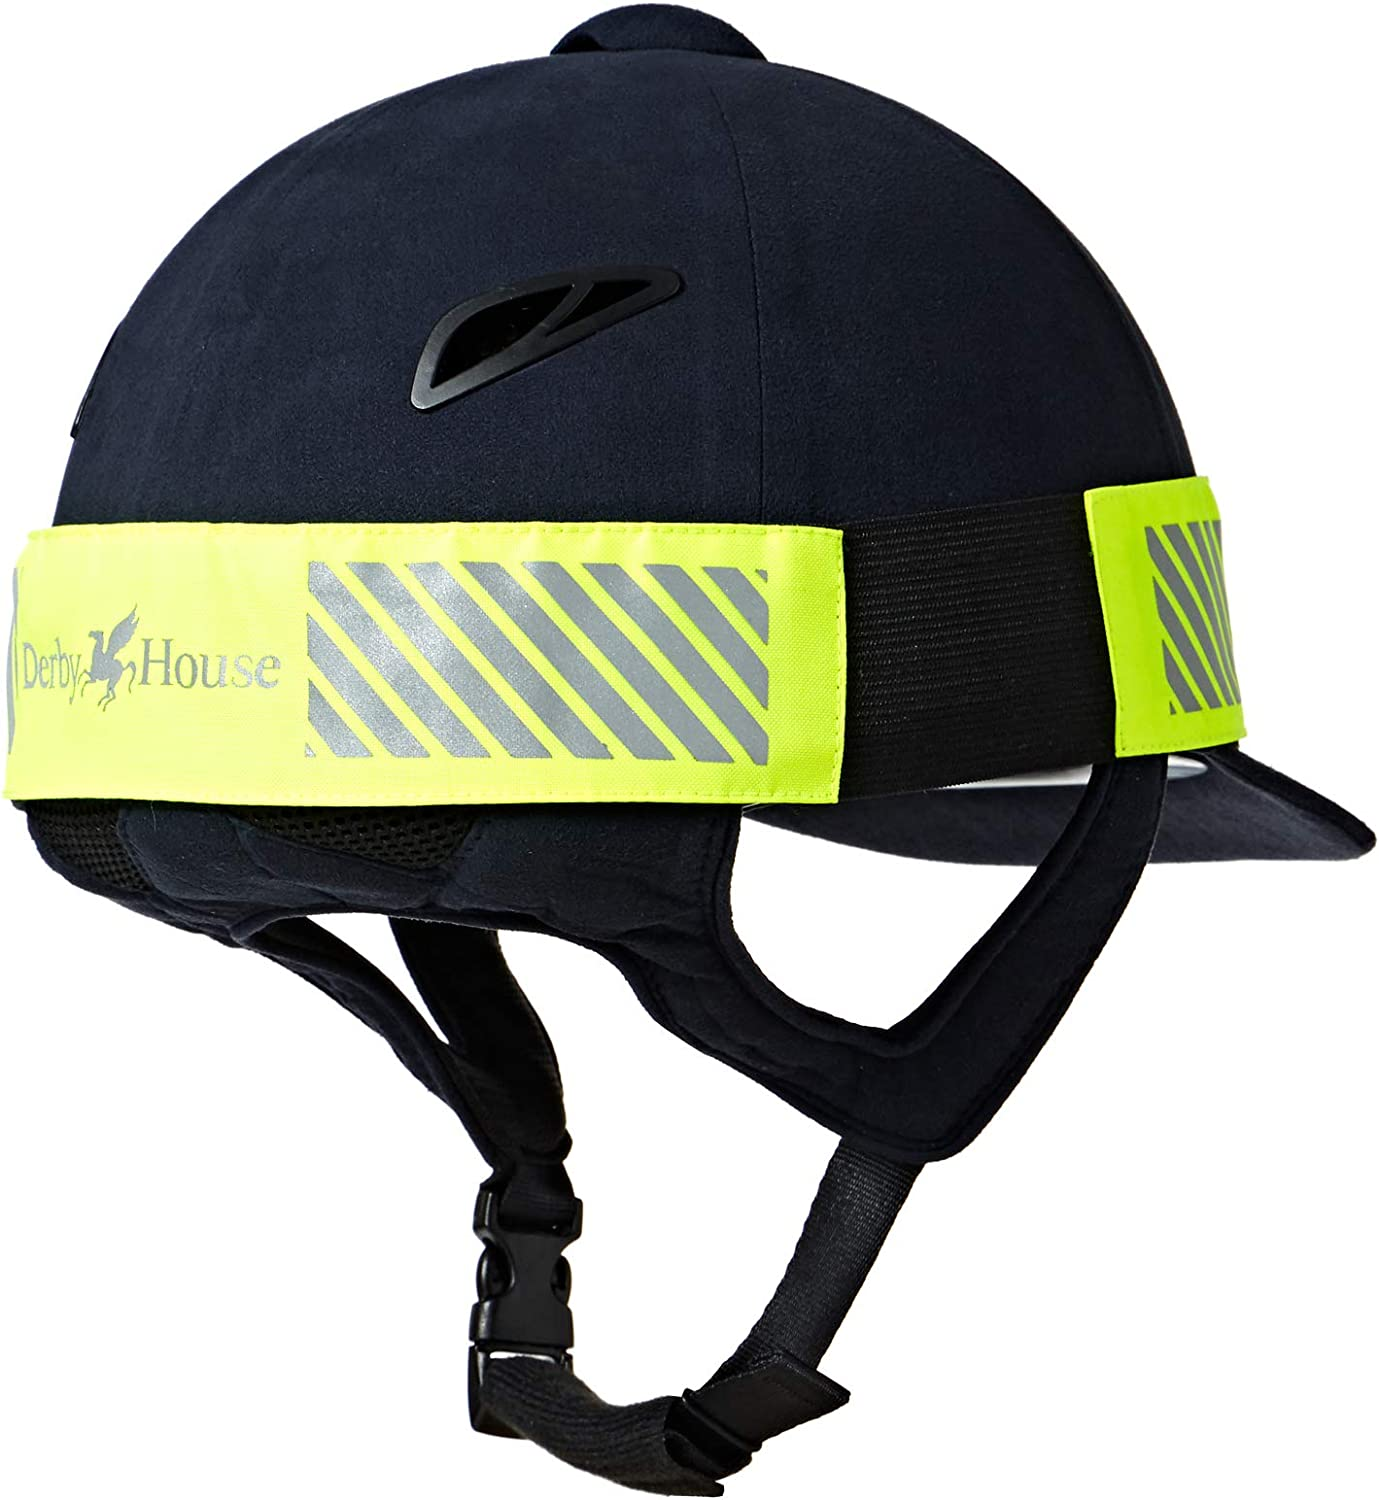 Derby House Hi Vis Riding Hat Band Hat Accessory